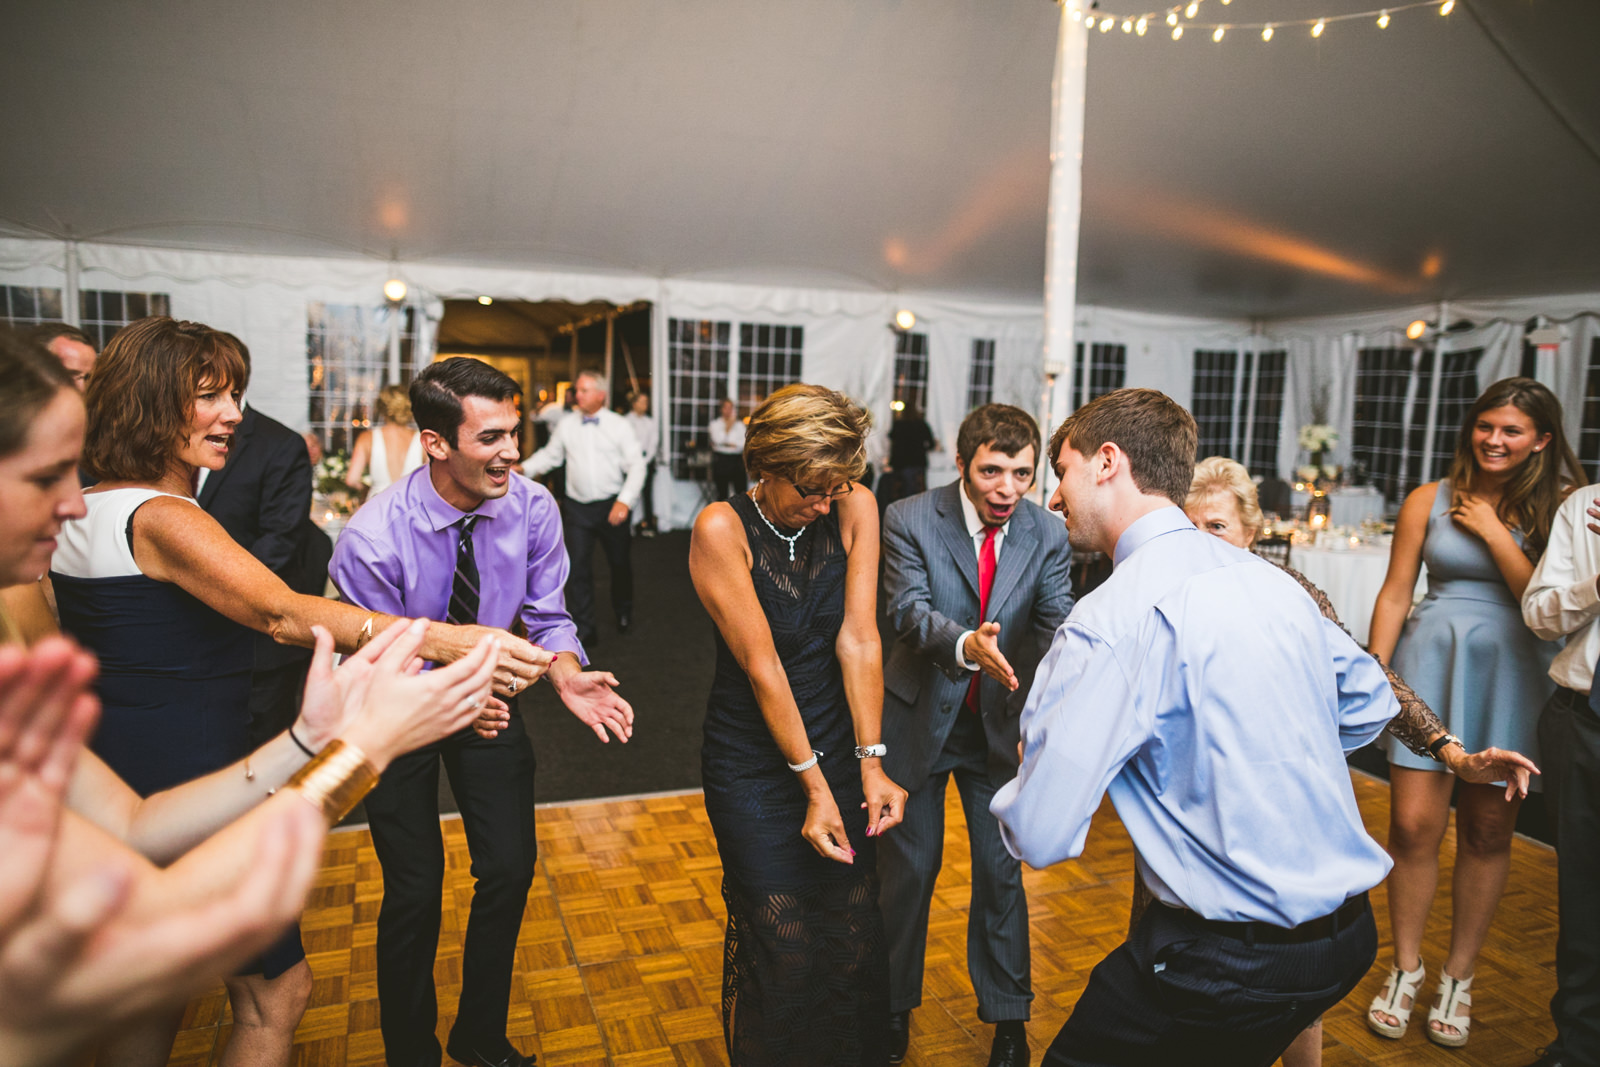 85-guests-dancing-at-wedding